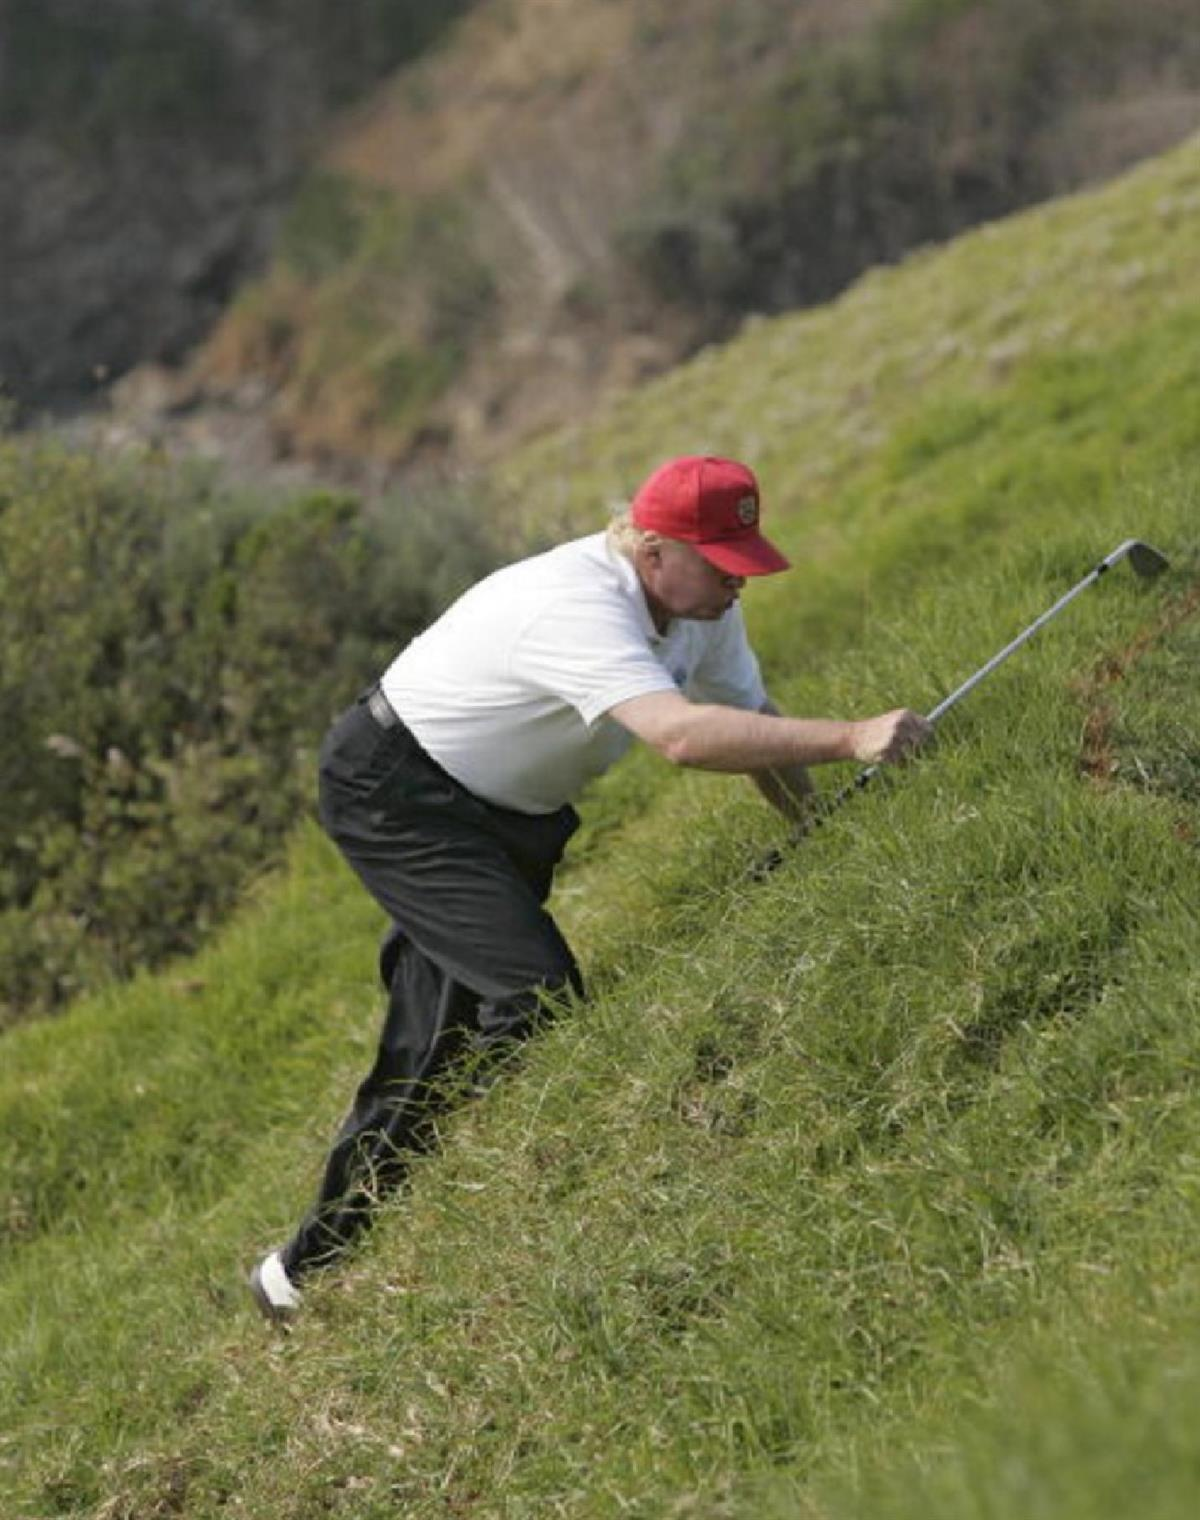 If he works this hard at golf, imagine how hard he will work at something almost as important…like the presidency.